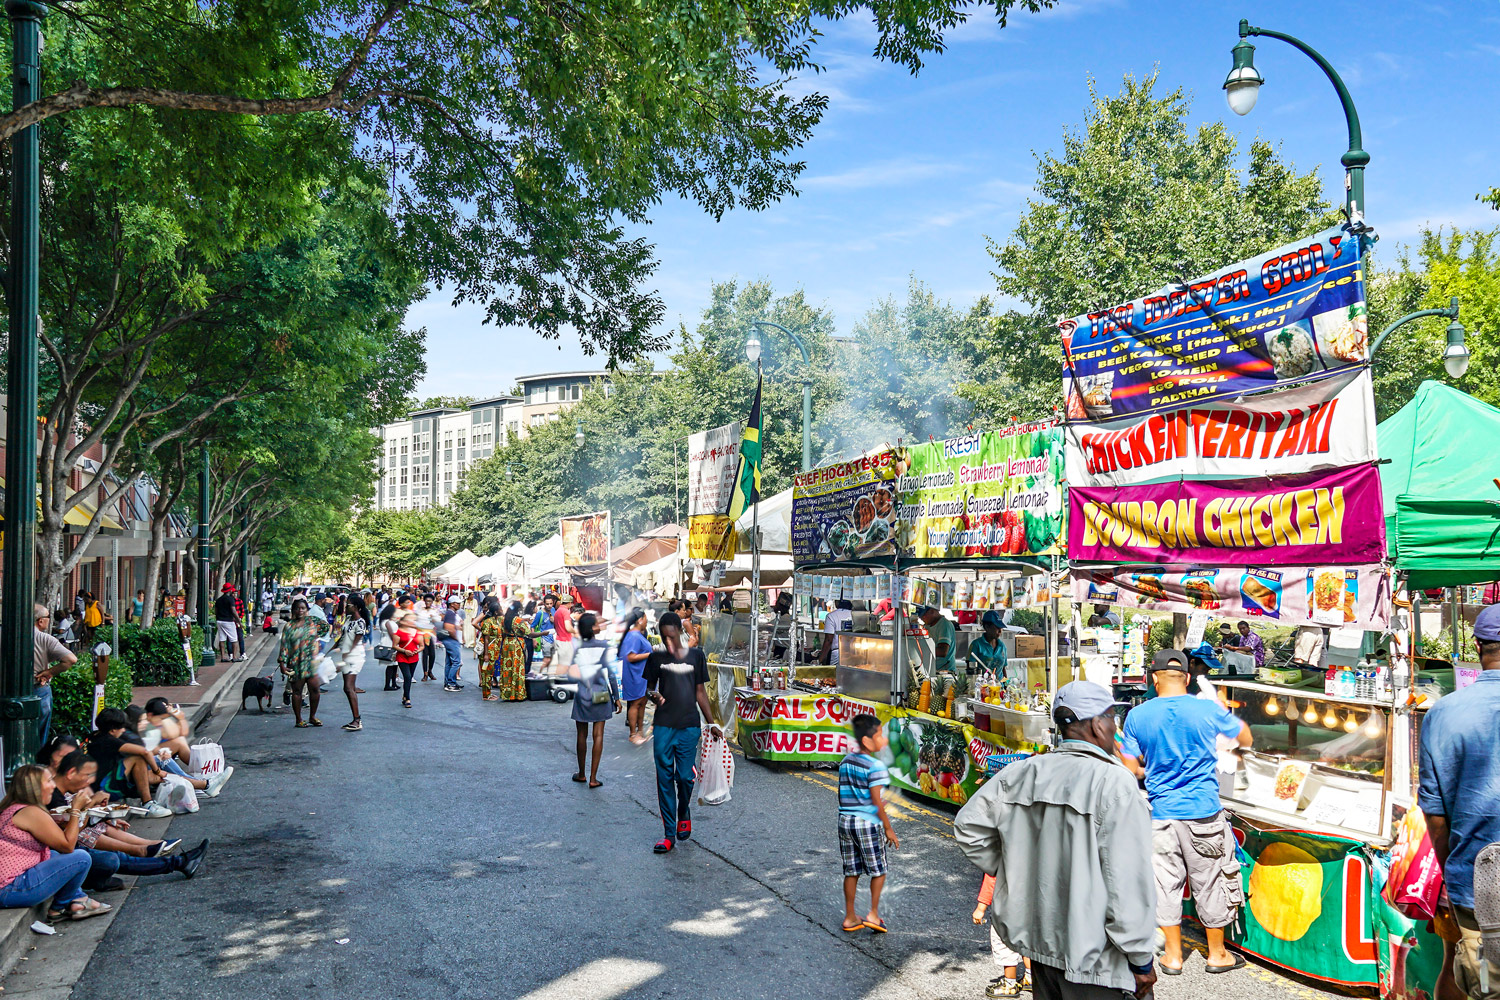 5 minutes to street fairs in Downtown Silver Spring, MD